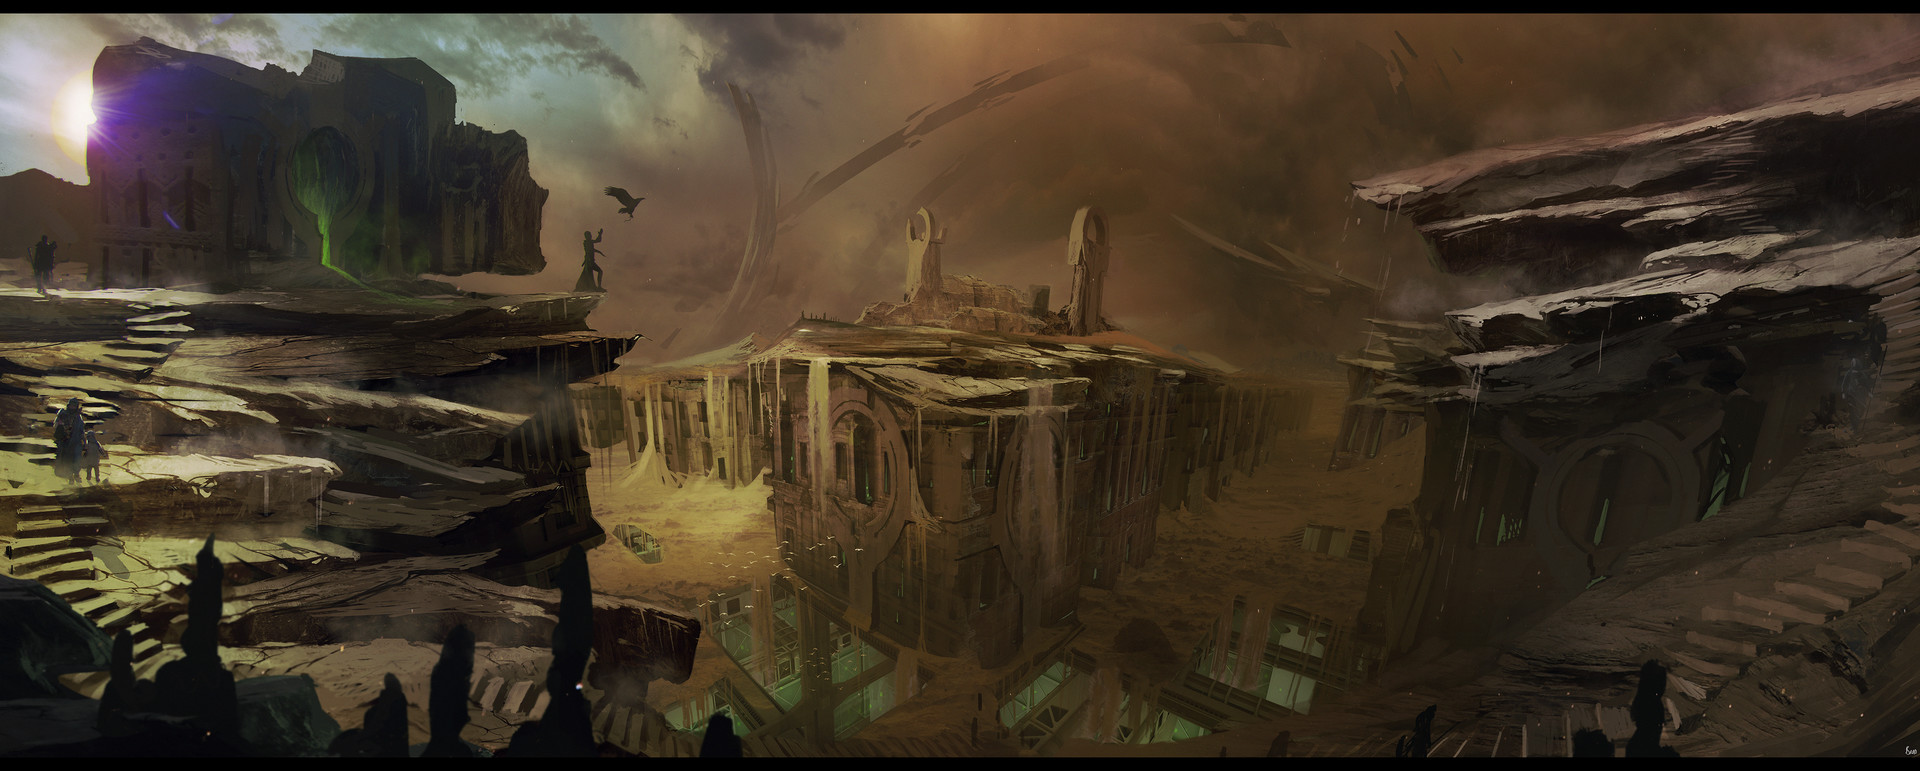 Brad wright the maker sietch tabr surface of arrakis